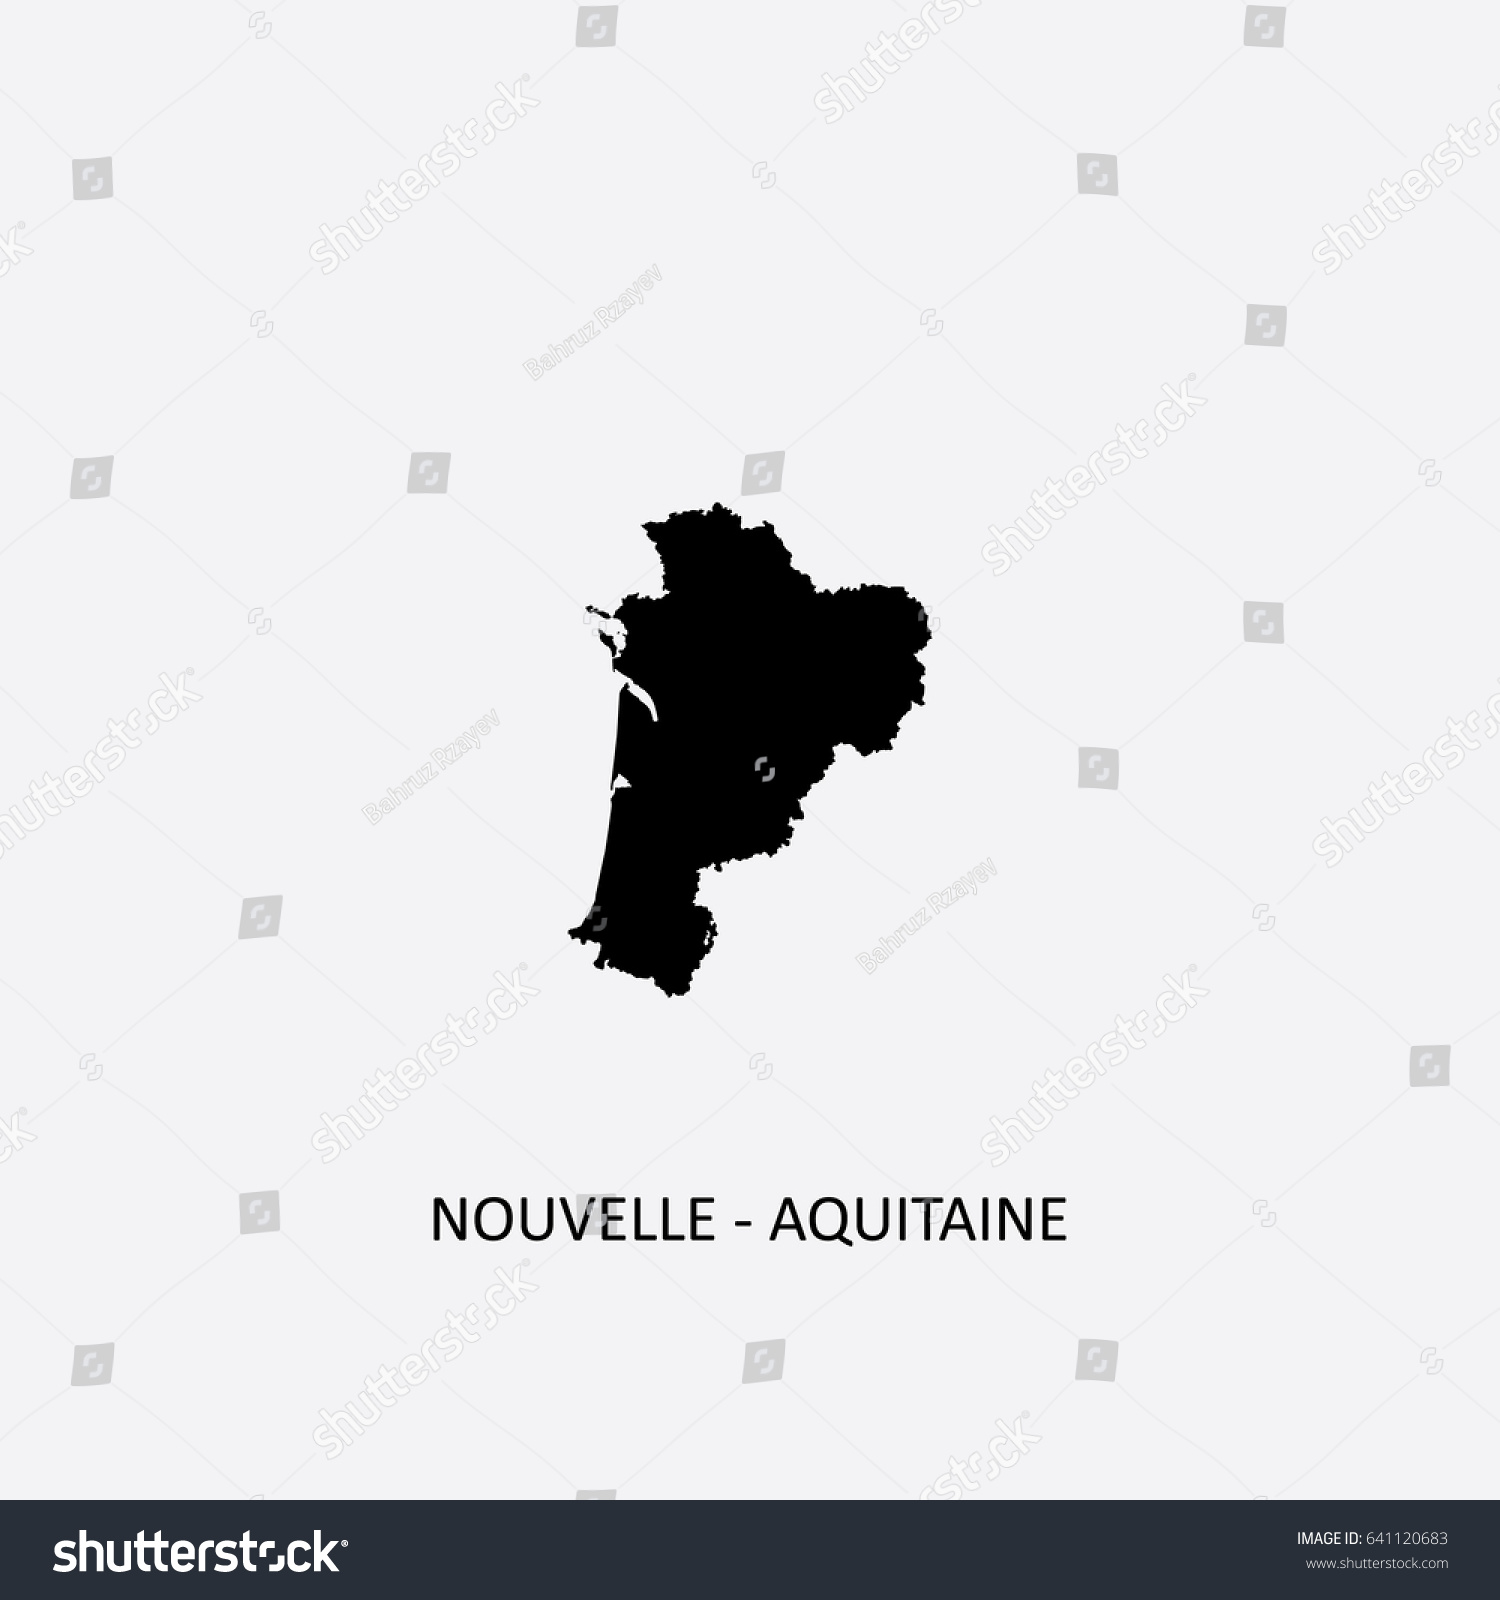 Map Nouvelleaquitaine France Vector Illustration Stock Vector